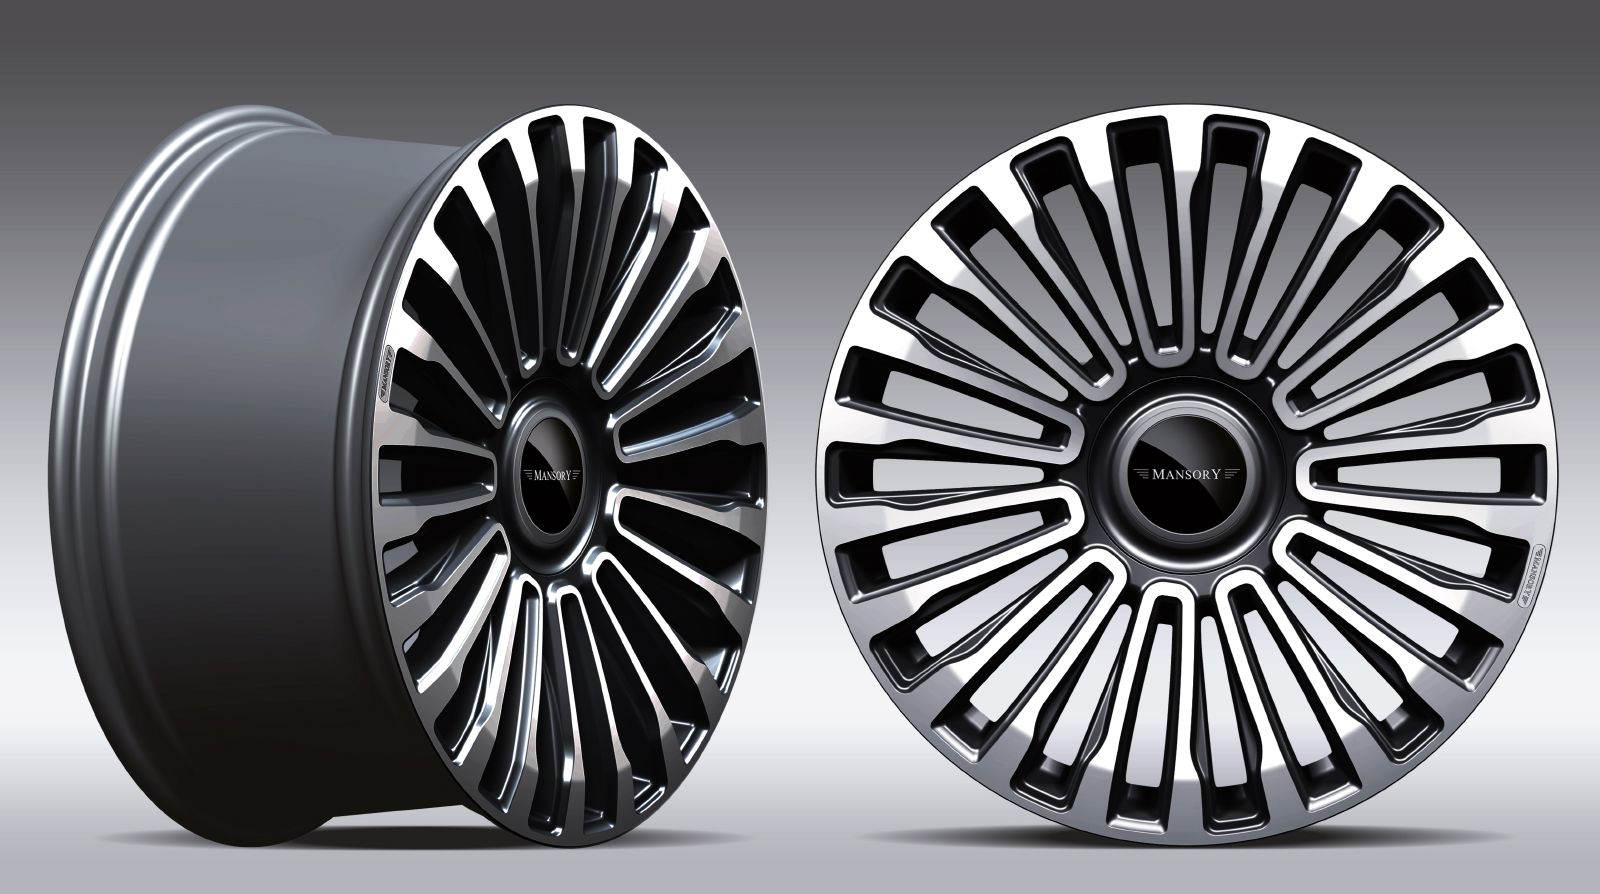 Mansory Startet Felgenoffensive Mit Der Luxury Wheels Collection Pagenstecher De Deine